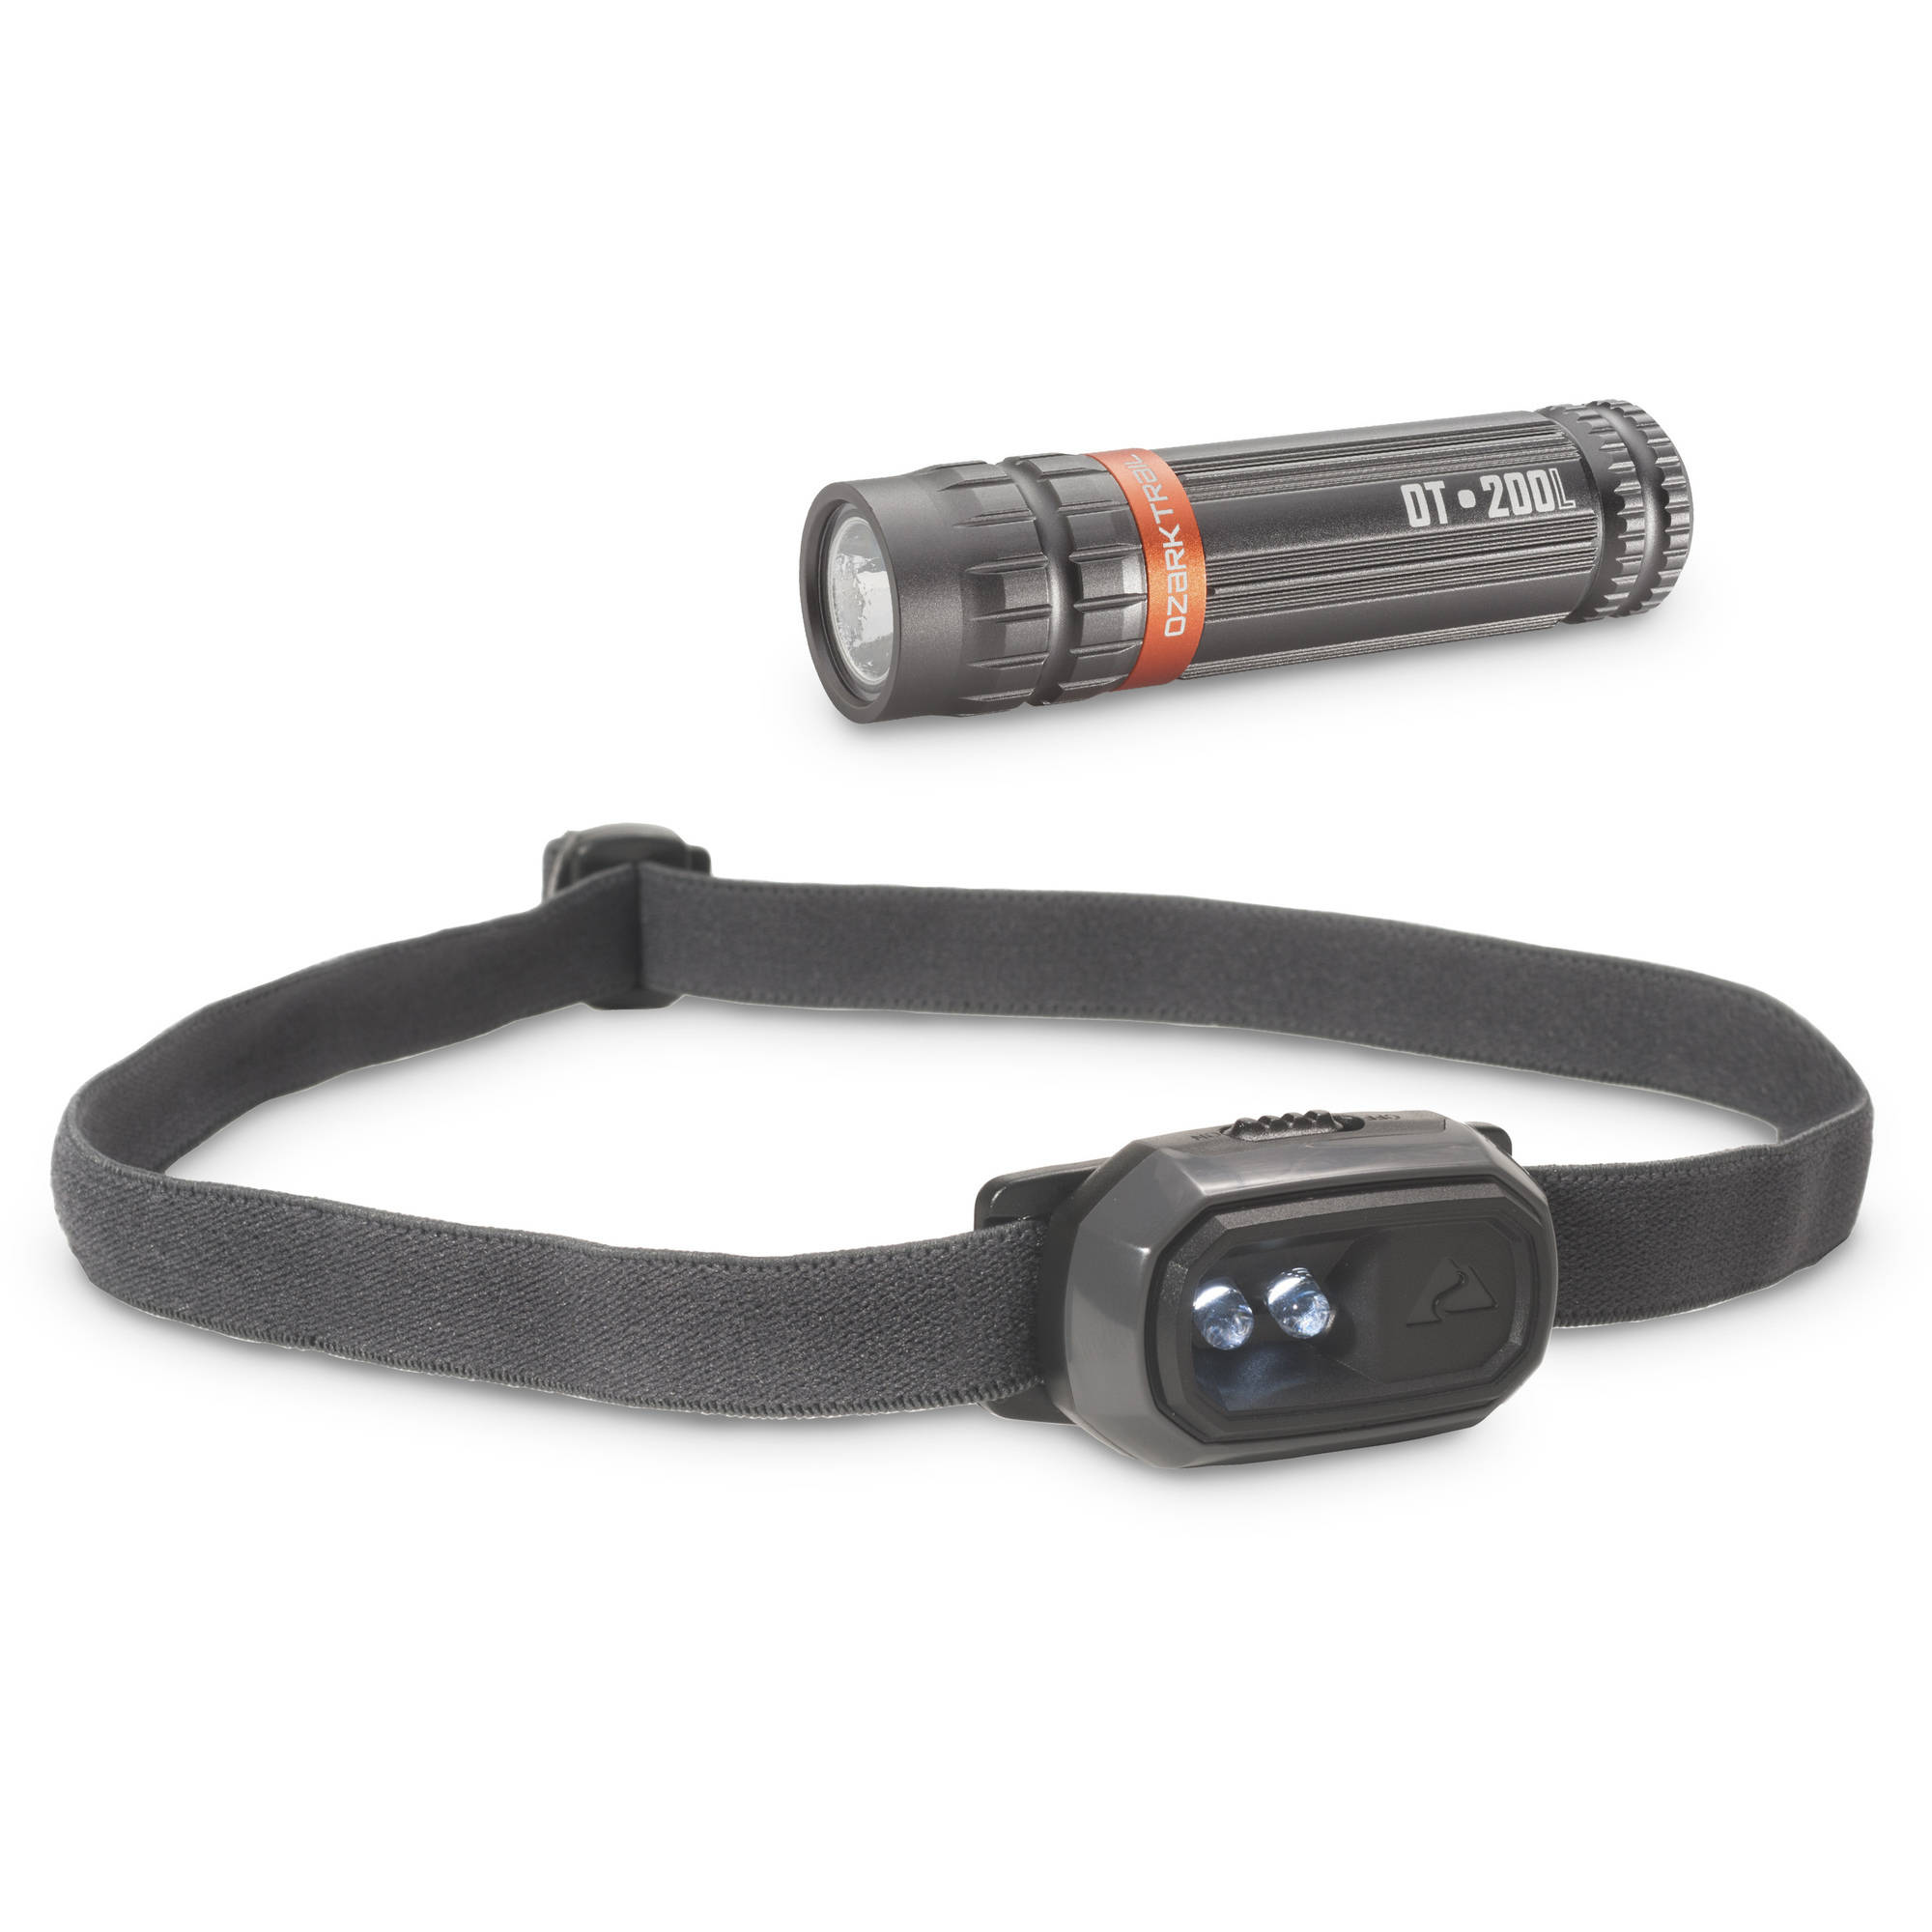 Ozark Trail 20L Mini Headlamp and 200L Flashlight Combo Pack